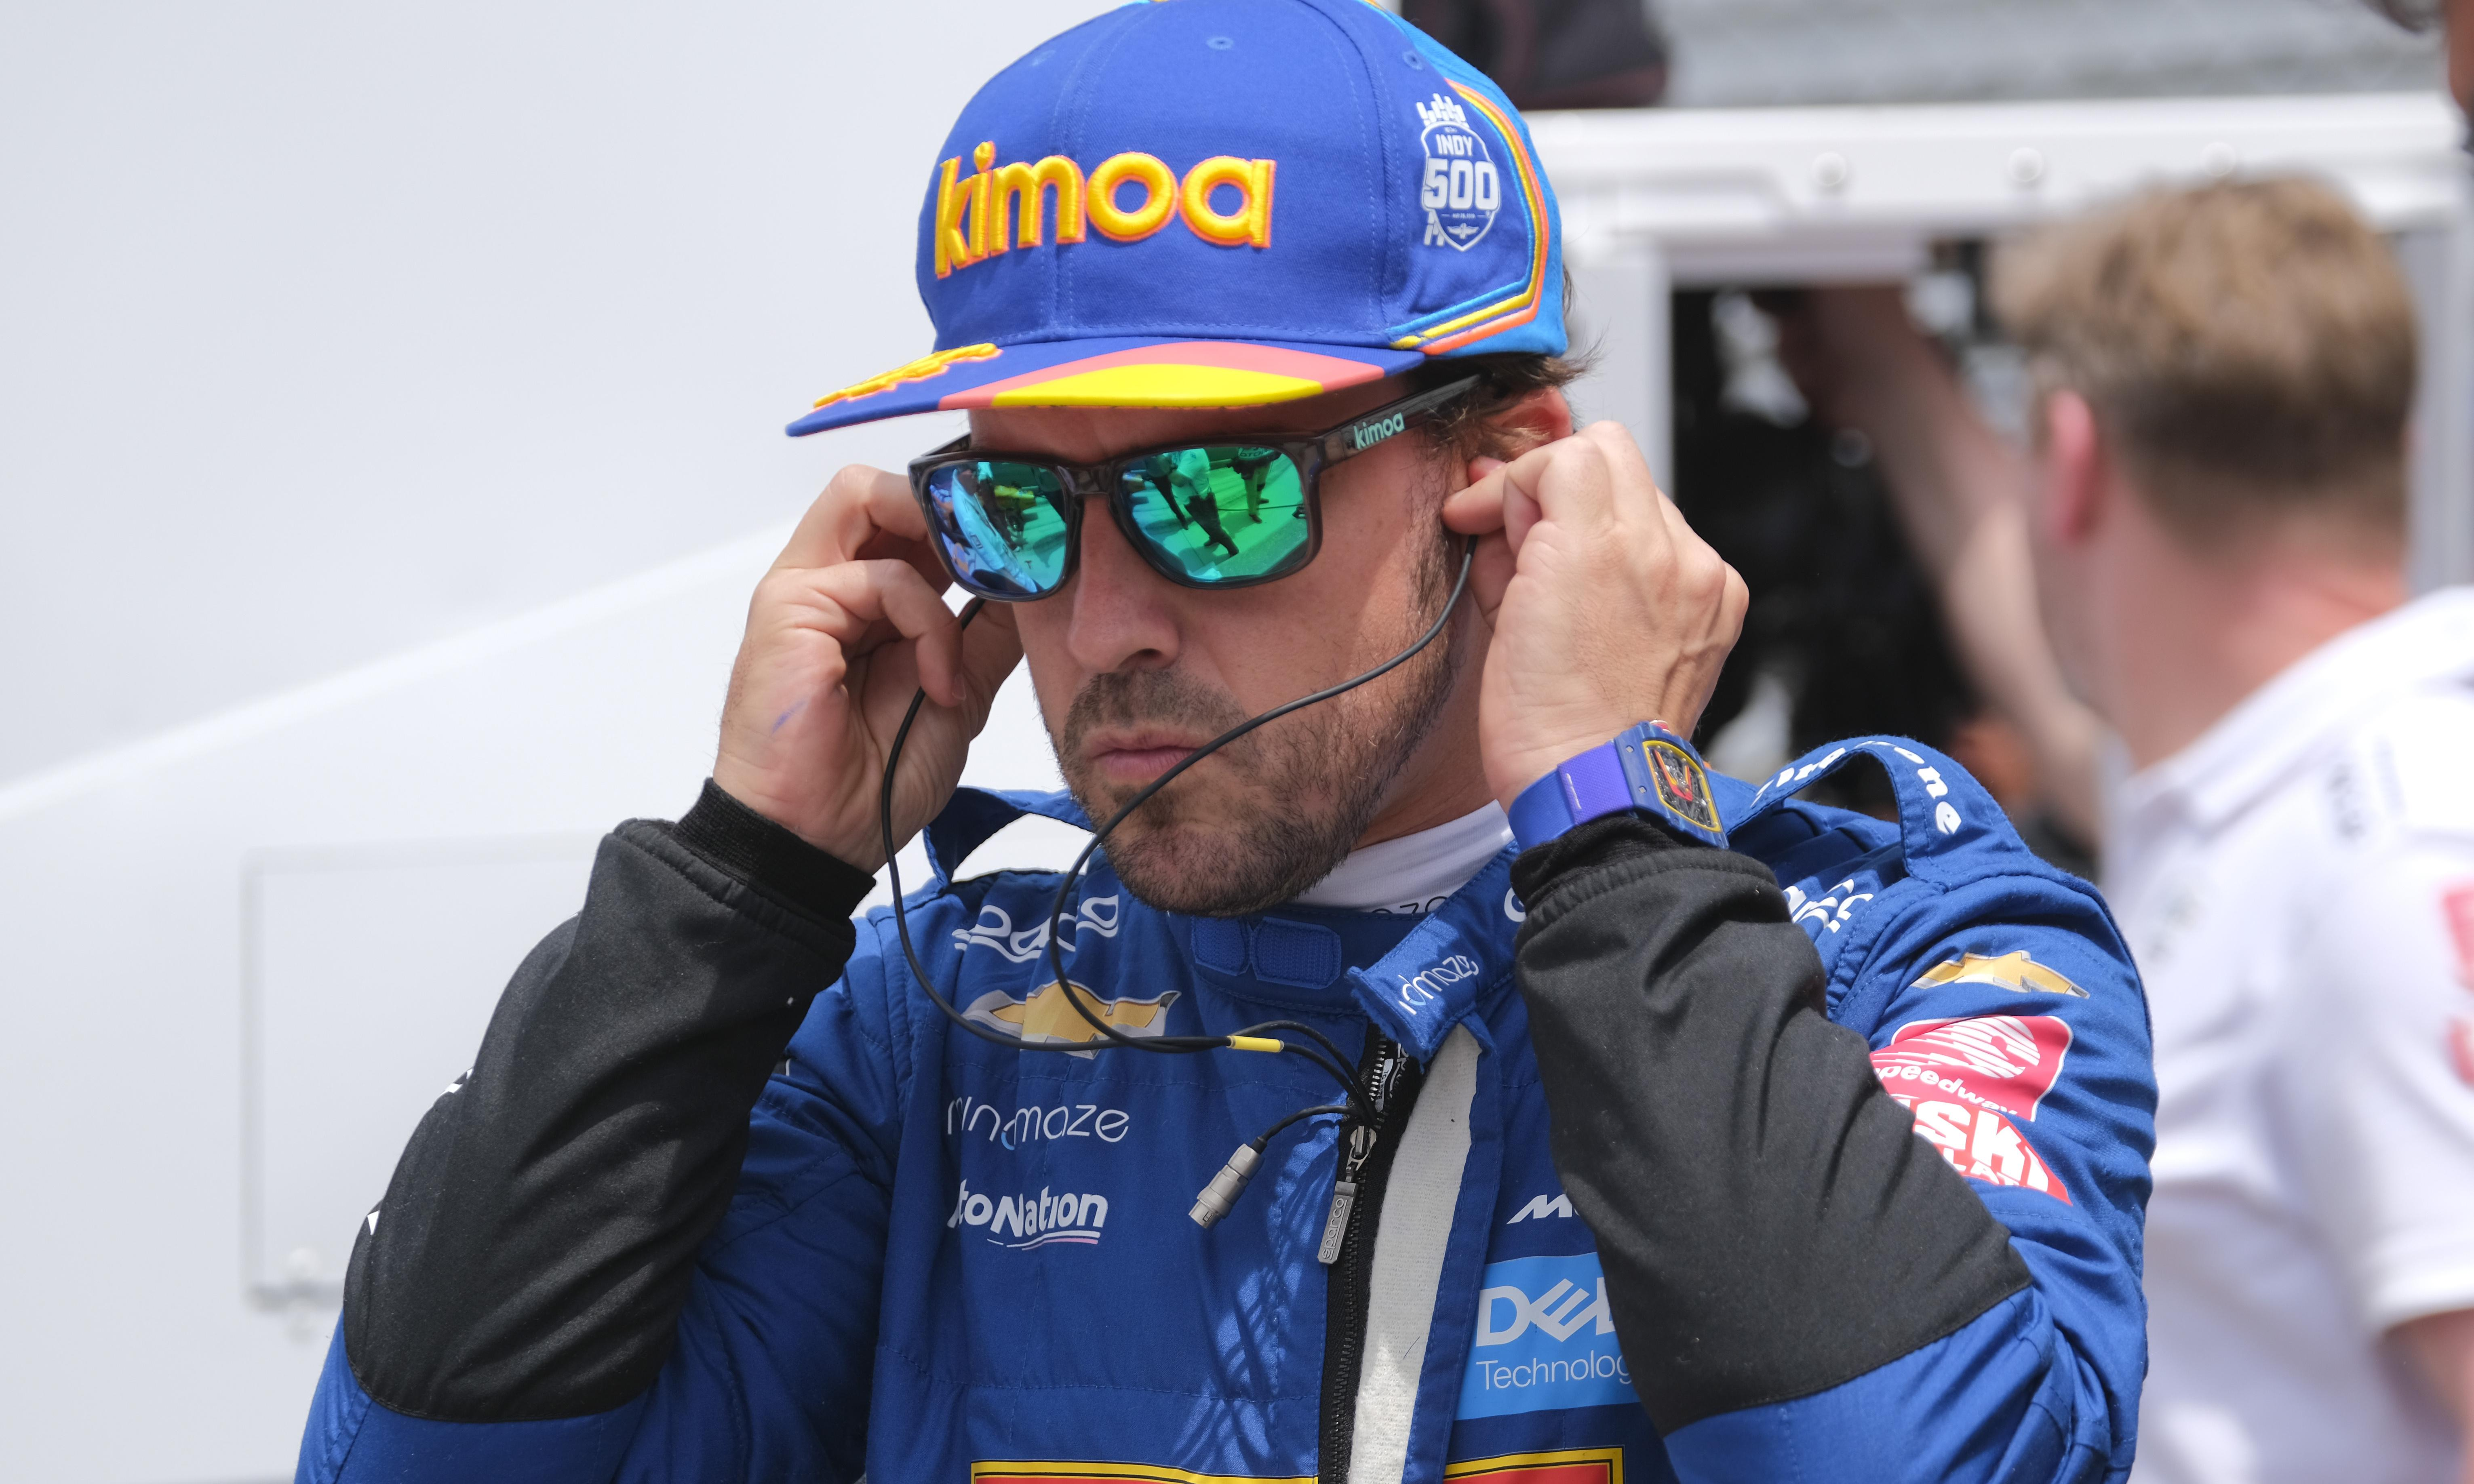 Fernando Alonso rejects McLaren offer to buy him into Indy 500